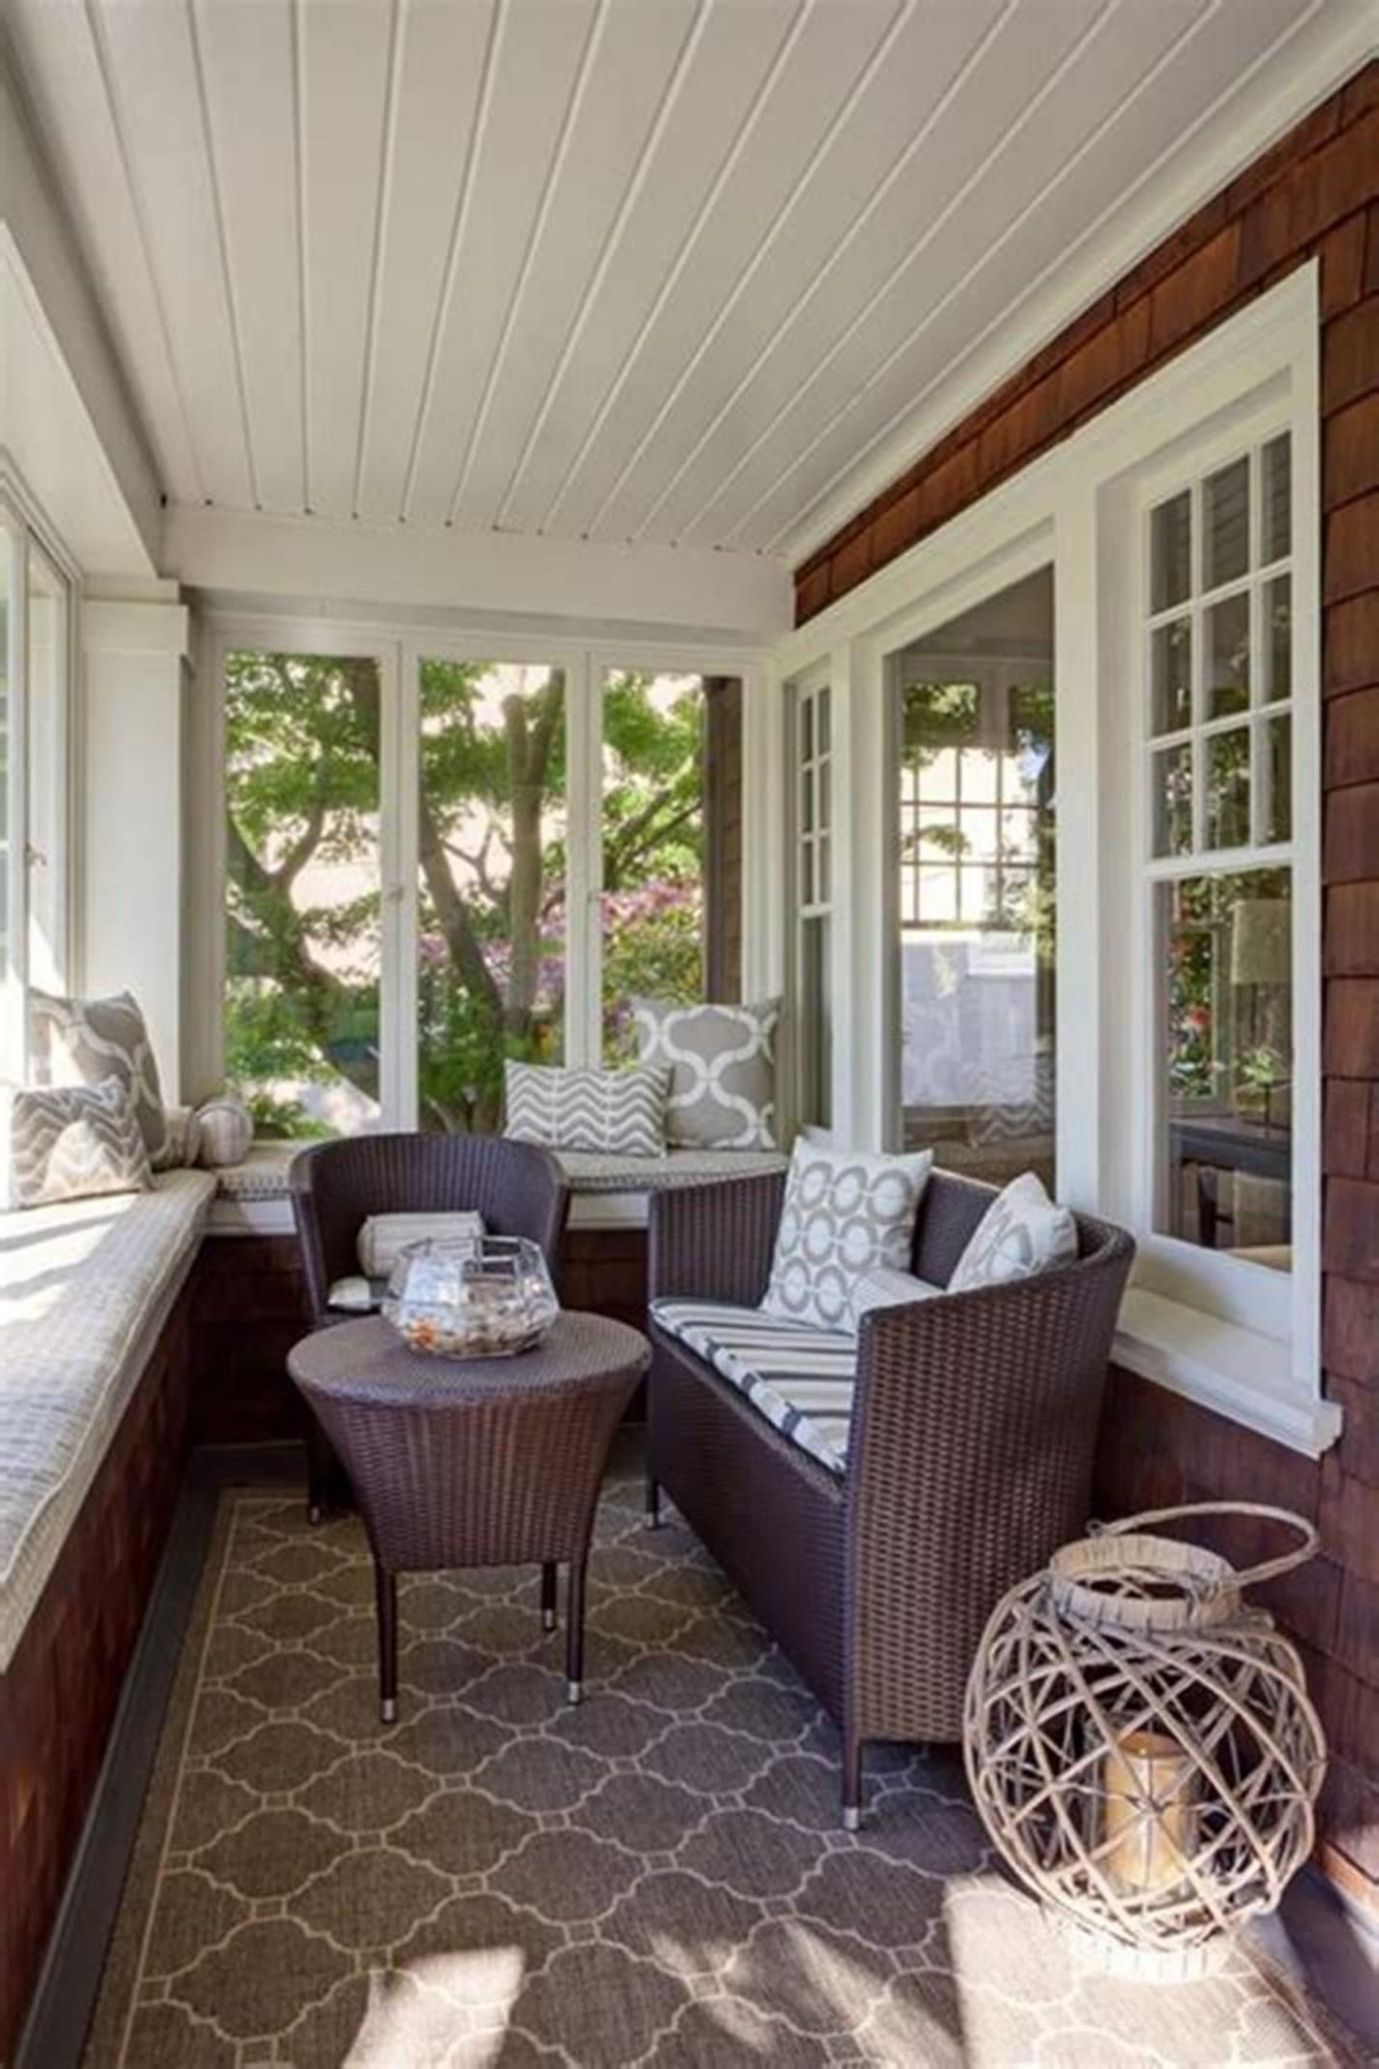 10 Stunning Sunroom Decor and Design Ideas | Small sunroom ..